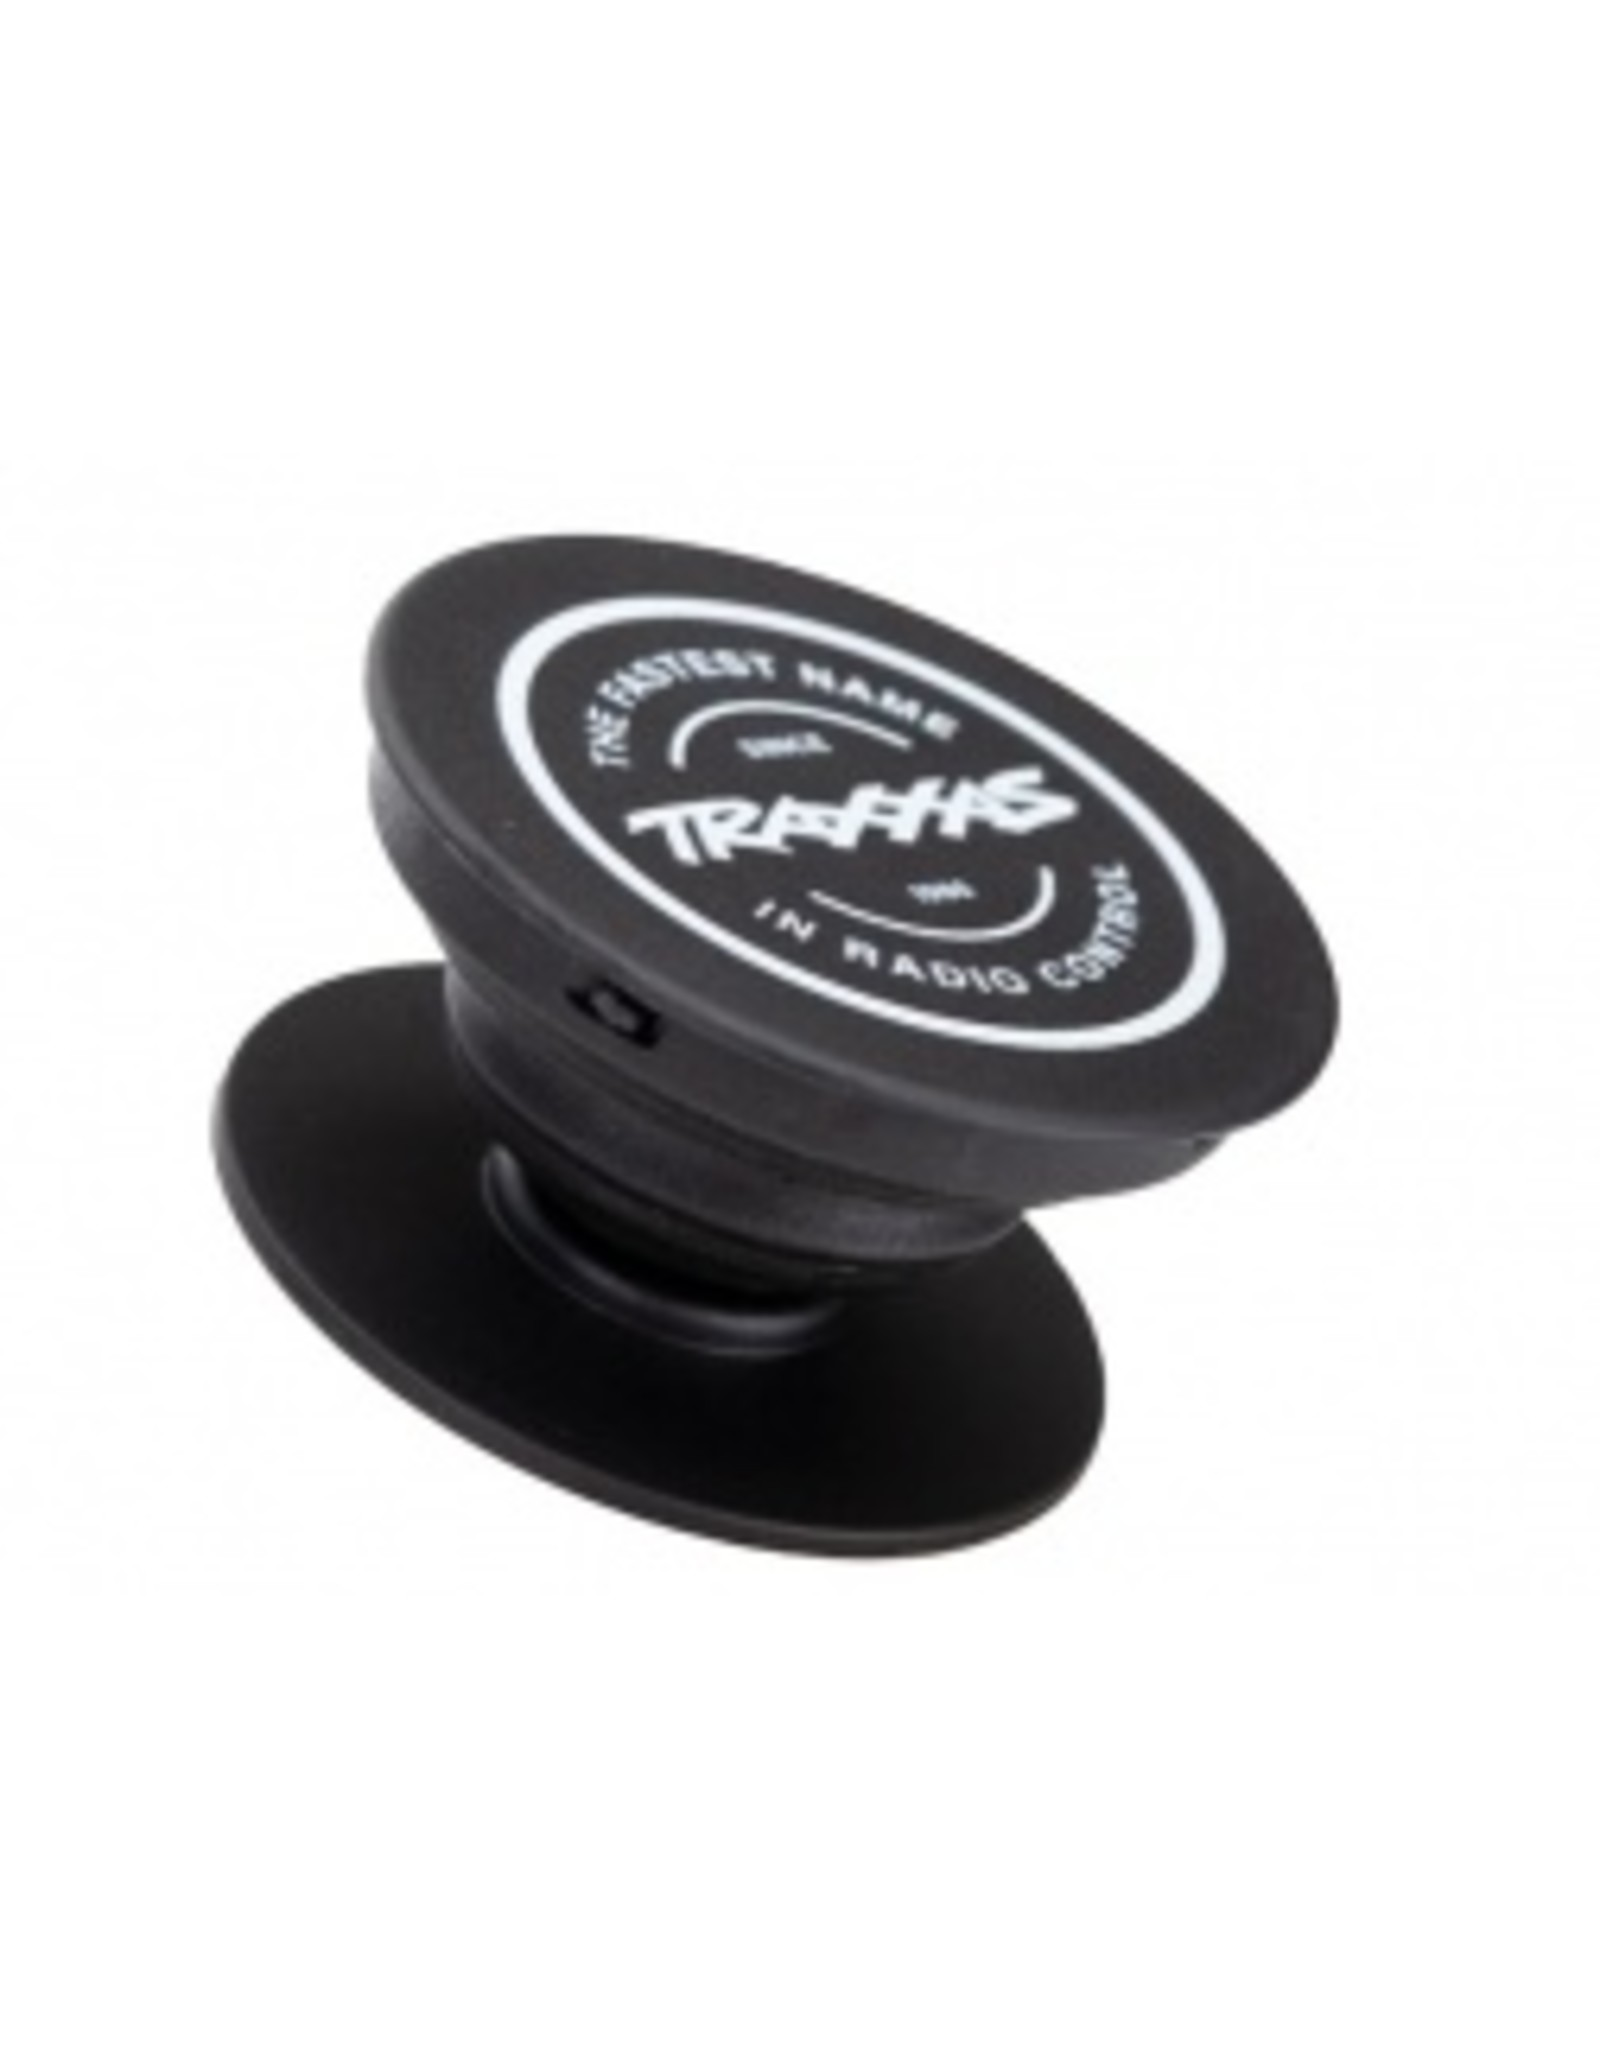 Traxxas Traxxas Expand and Stand Phone Grip - Pop Socket (61646)